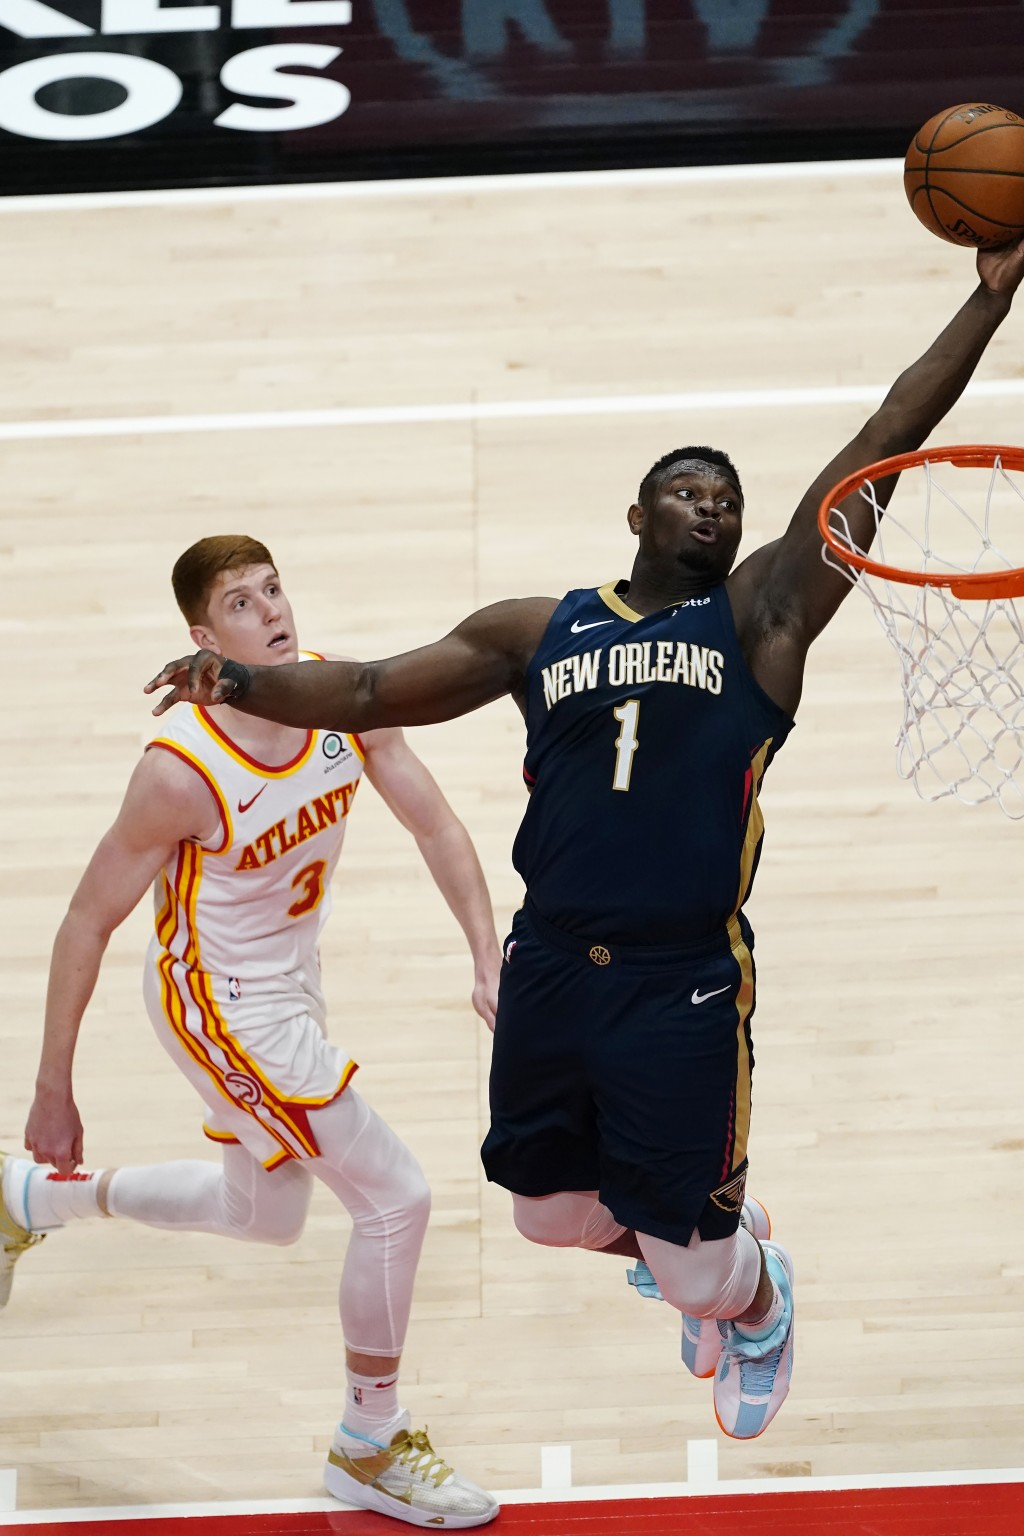 New Orleans Pelicans forward Zion Williamson (1) scores as Atlanta Hawks guard Kevin Huerter (3) defends in the first half of an NBA basketball game T...